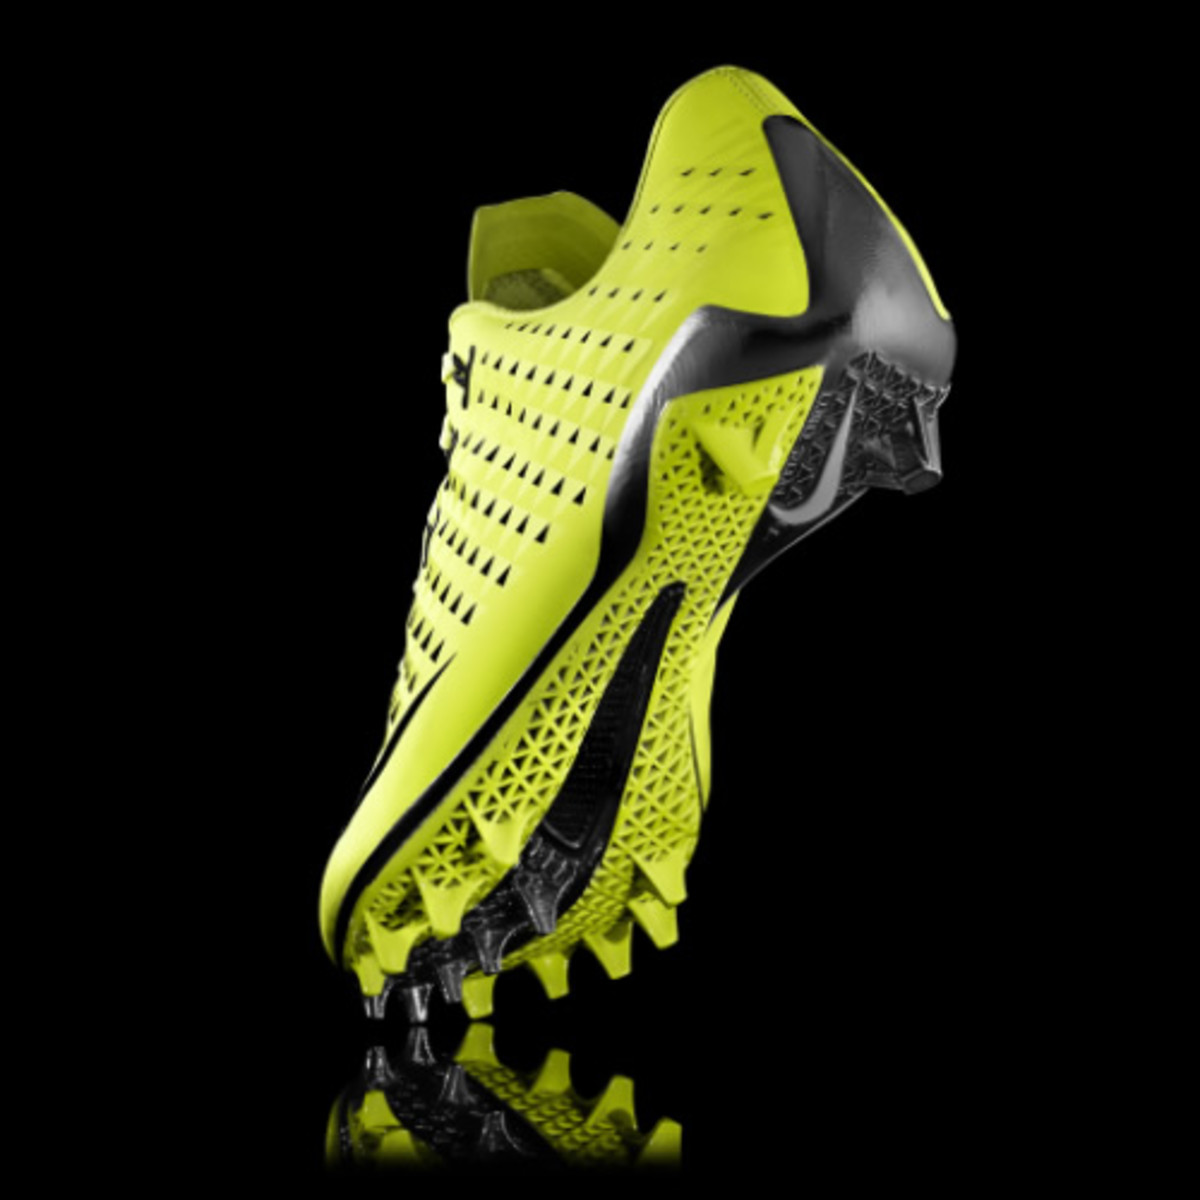 d246e17e3d1d Taking advantage of 3D printing technology, Nike introduces the Vapor Laser  Talon. Nike was able to speed up its development schedule using Selective  Laser ...